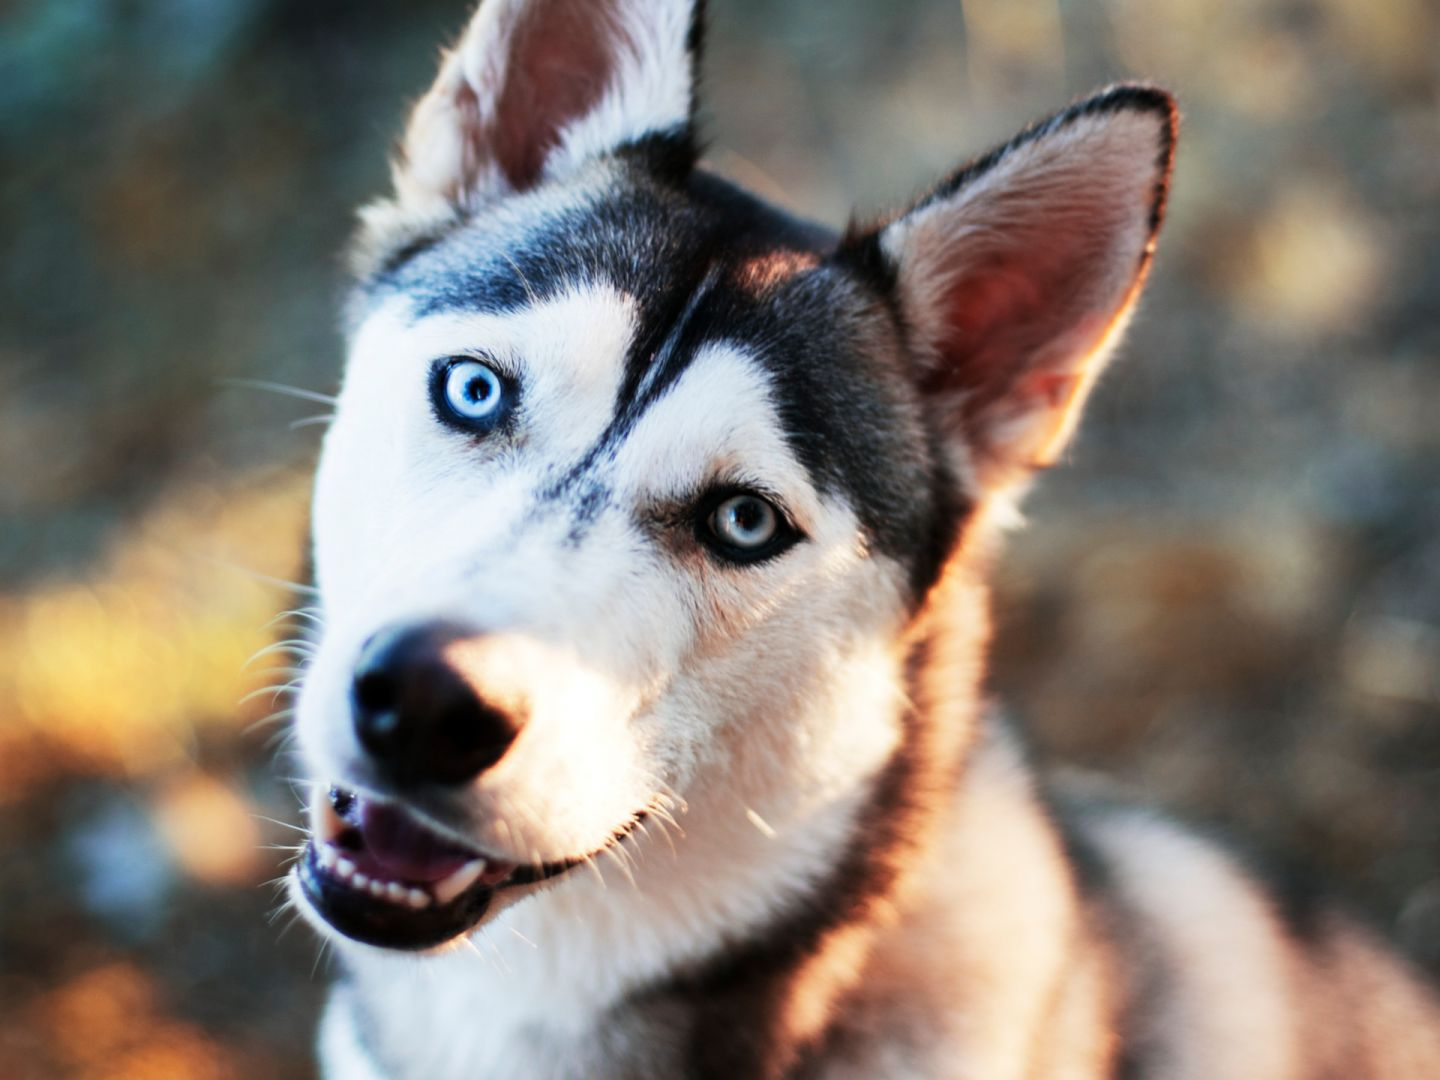 A husky dog hears his favorite sound in Lapland, Finland